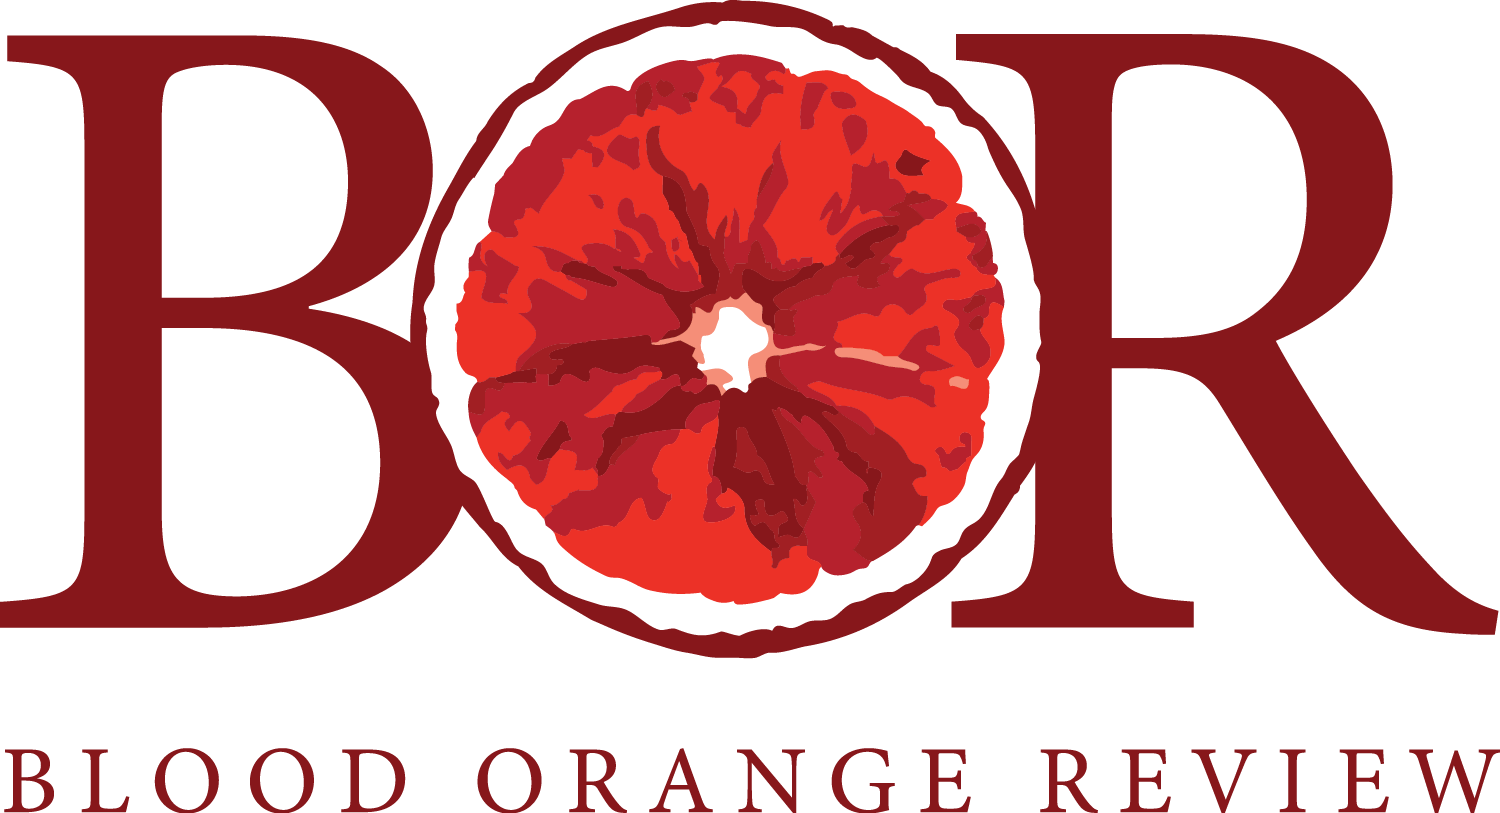 Blood Orange Review